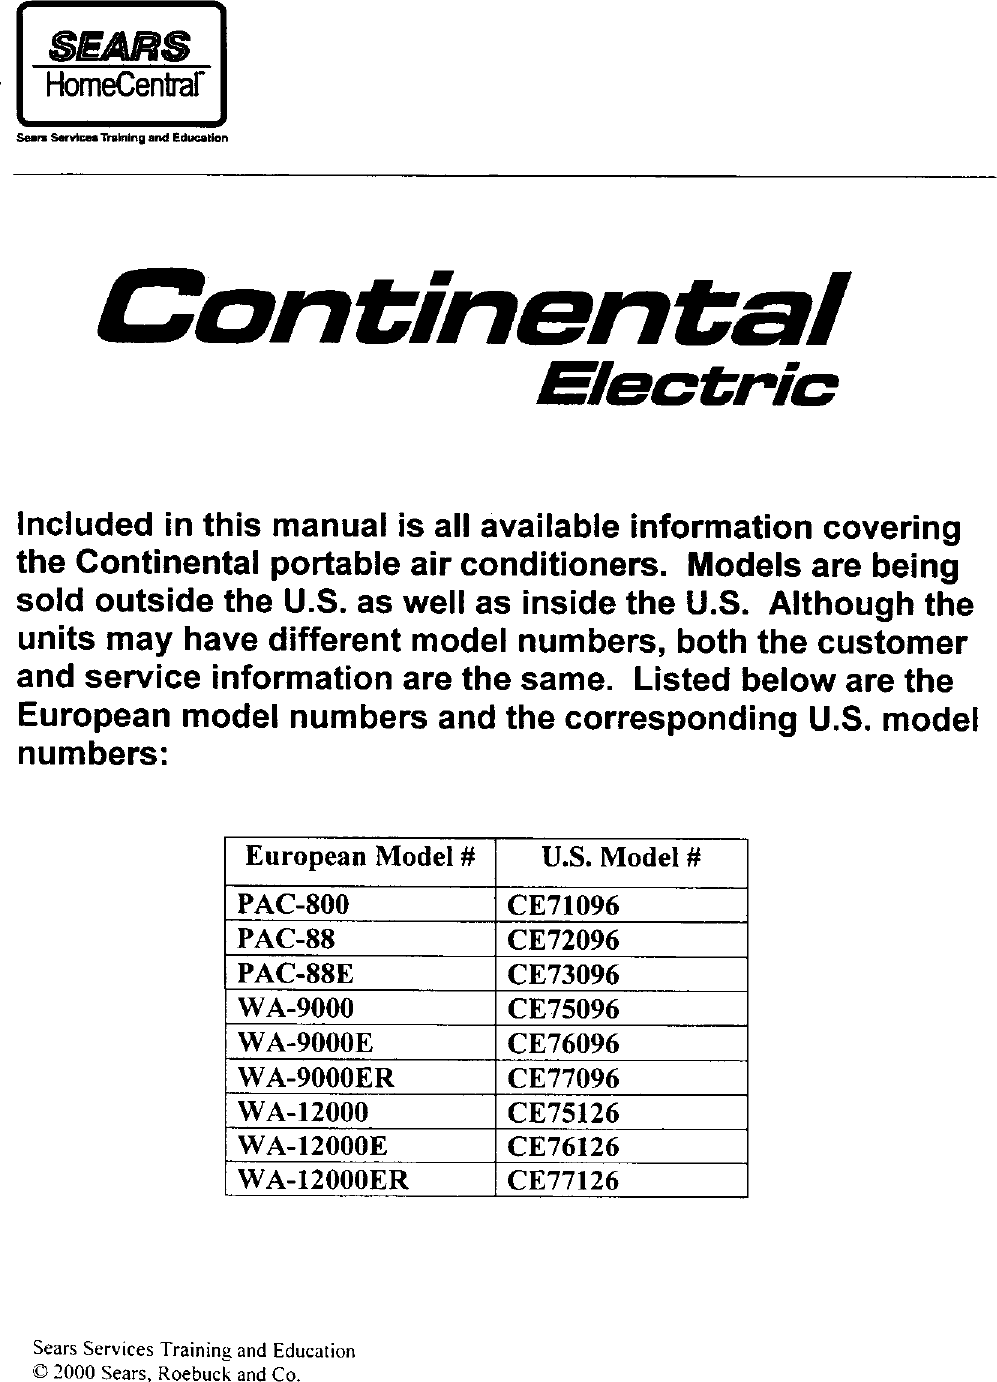 Continental Ce71096 User Manual Air Conditioner Manuals And Guides Vanair Wiring Diagram L0204118